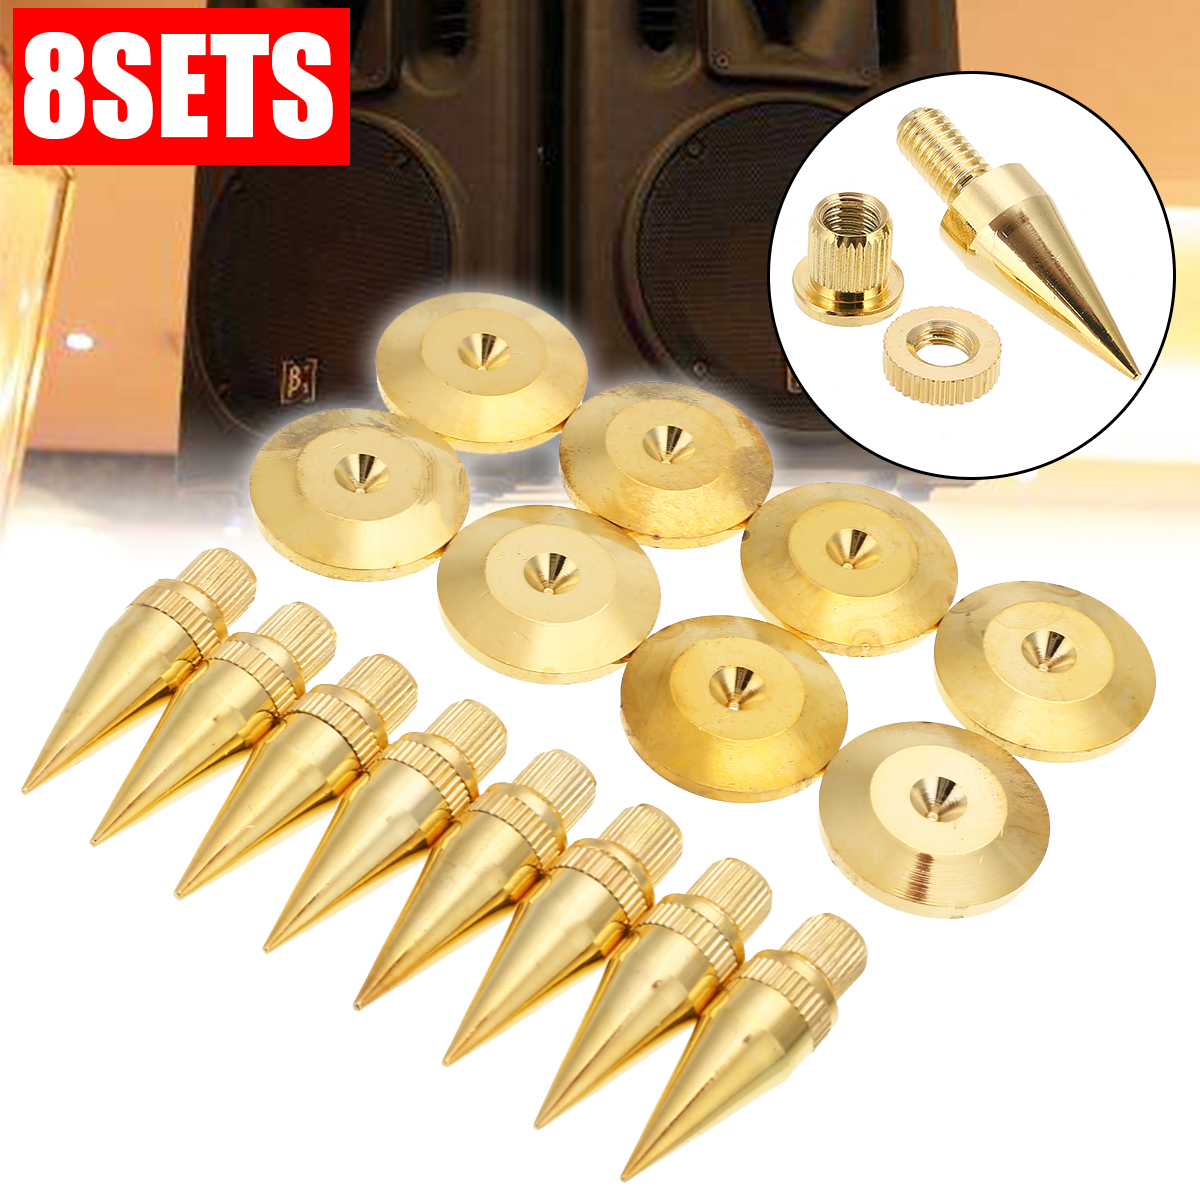 8sets M6*36 Golden Speaker Isolation Spike High Quality Copper Isolation Cone Stand Feet+Base Pads Floor Discs Mayitr